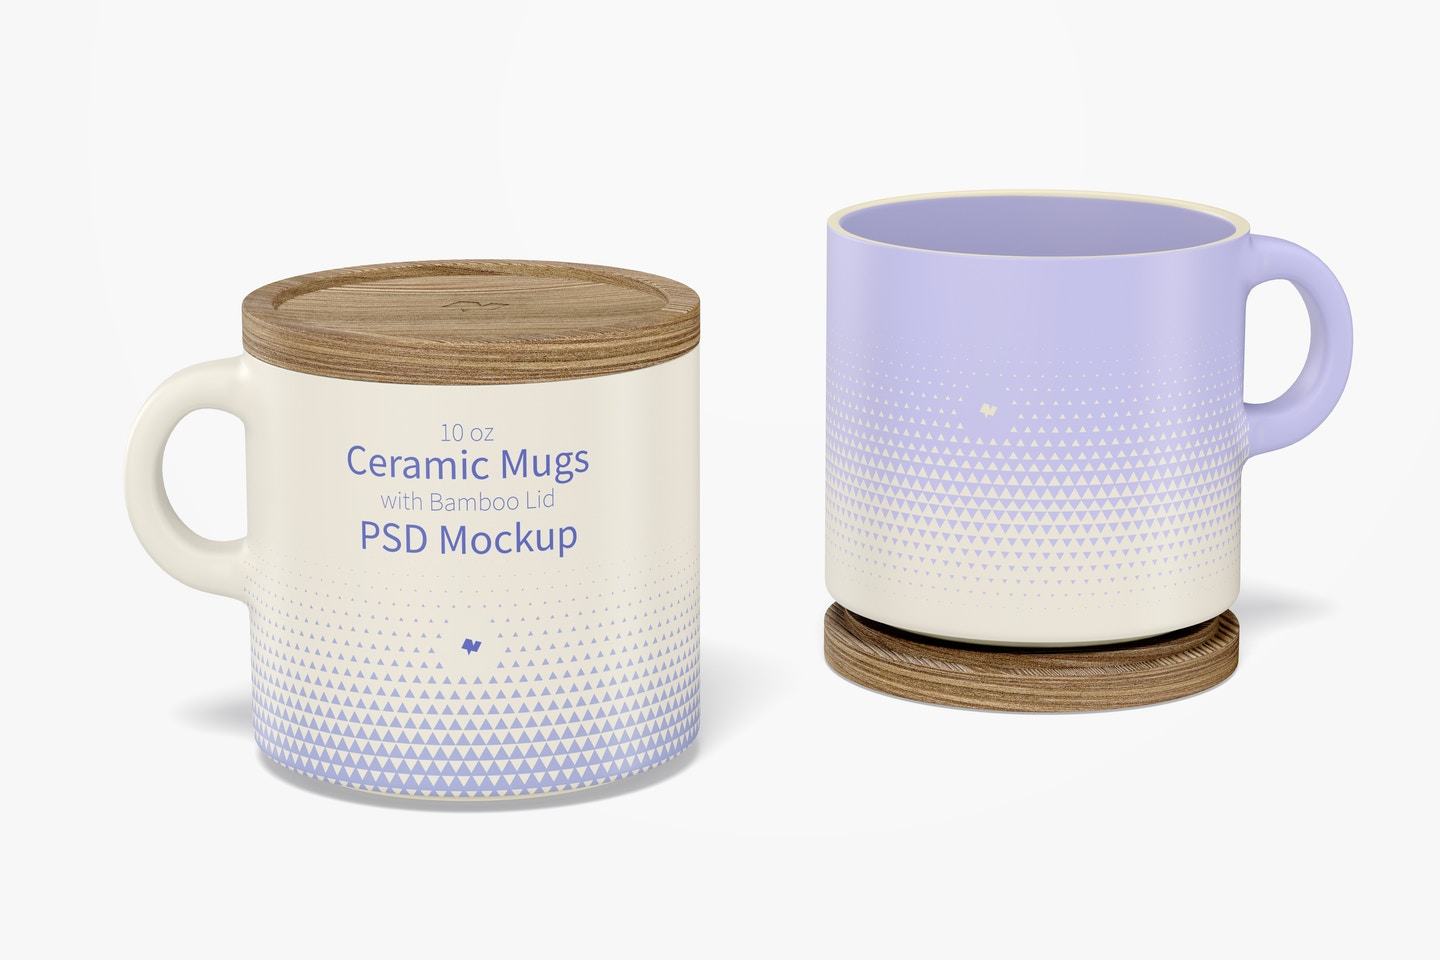 10 oz Ceramic Mugs with Bamboo Lid Mockup, Opened and Closed